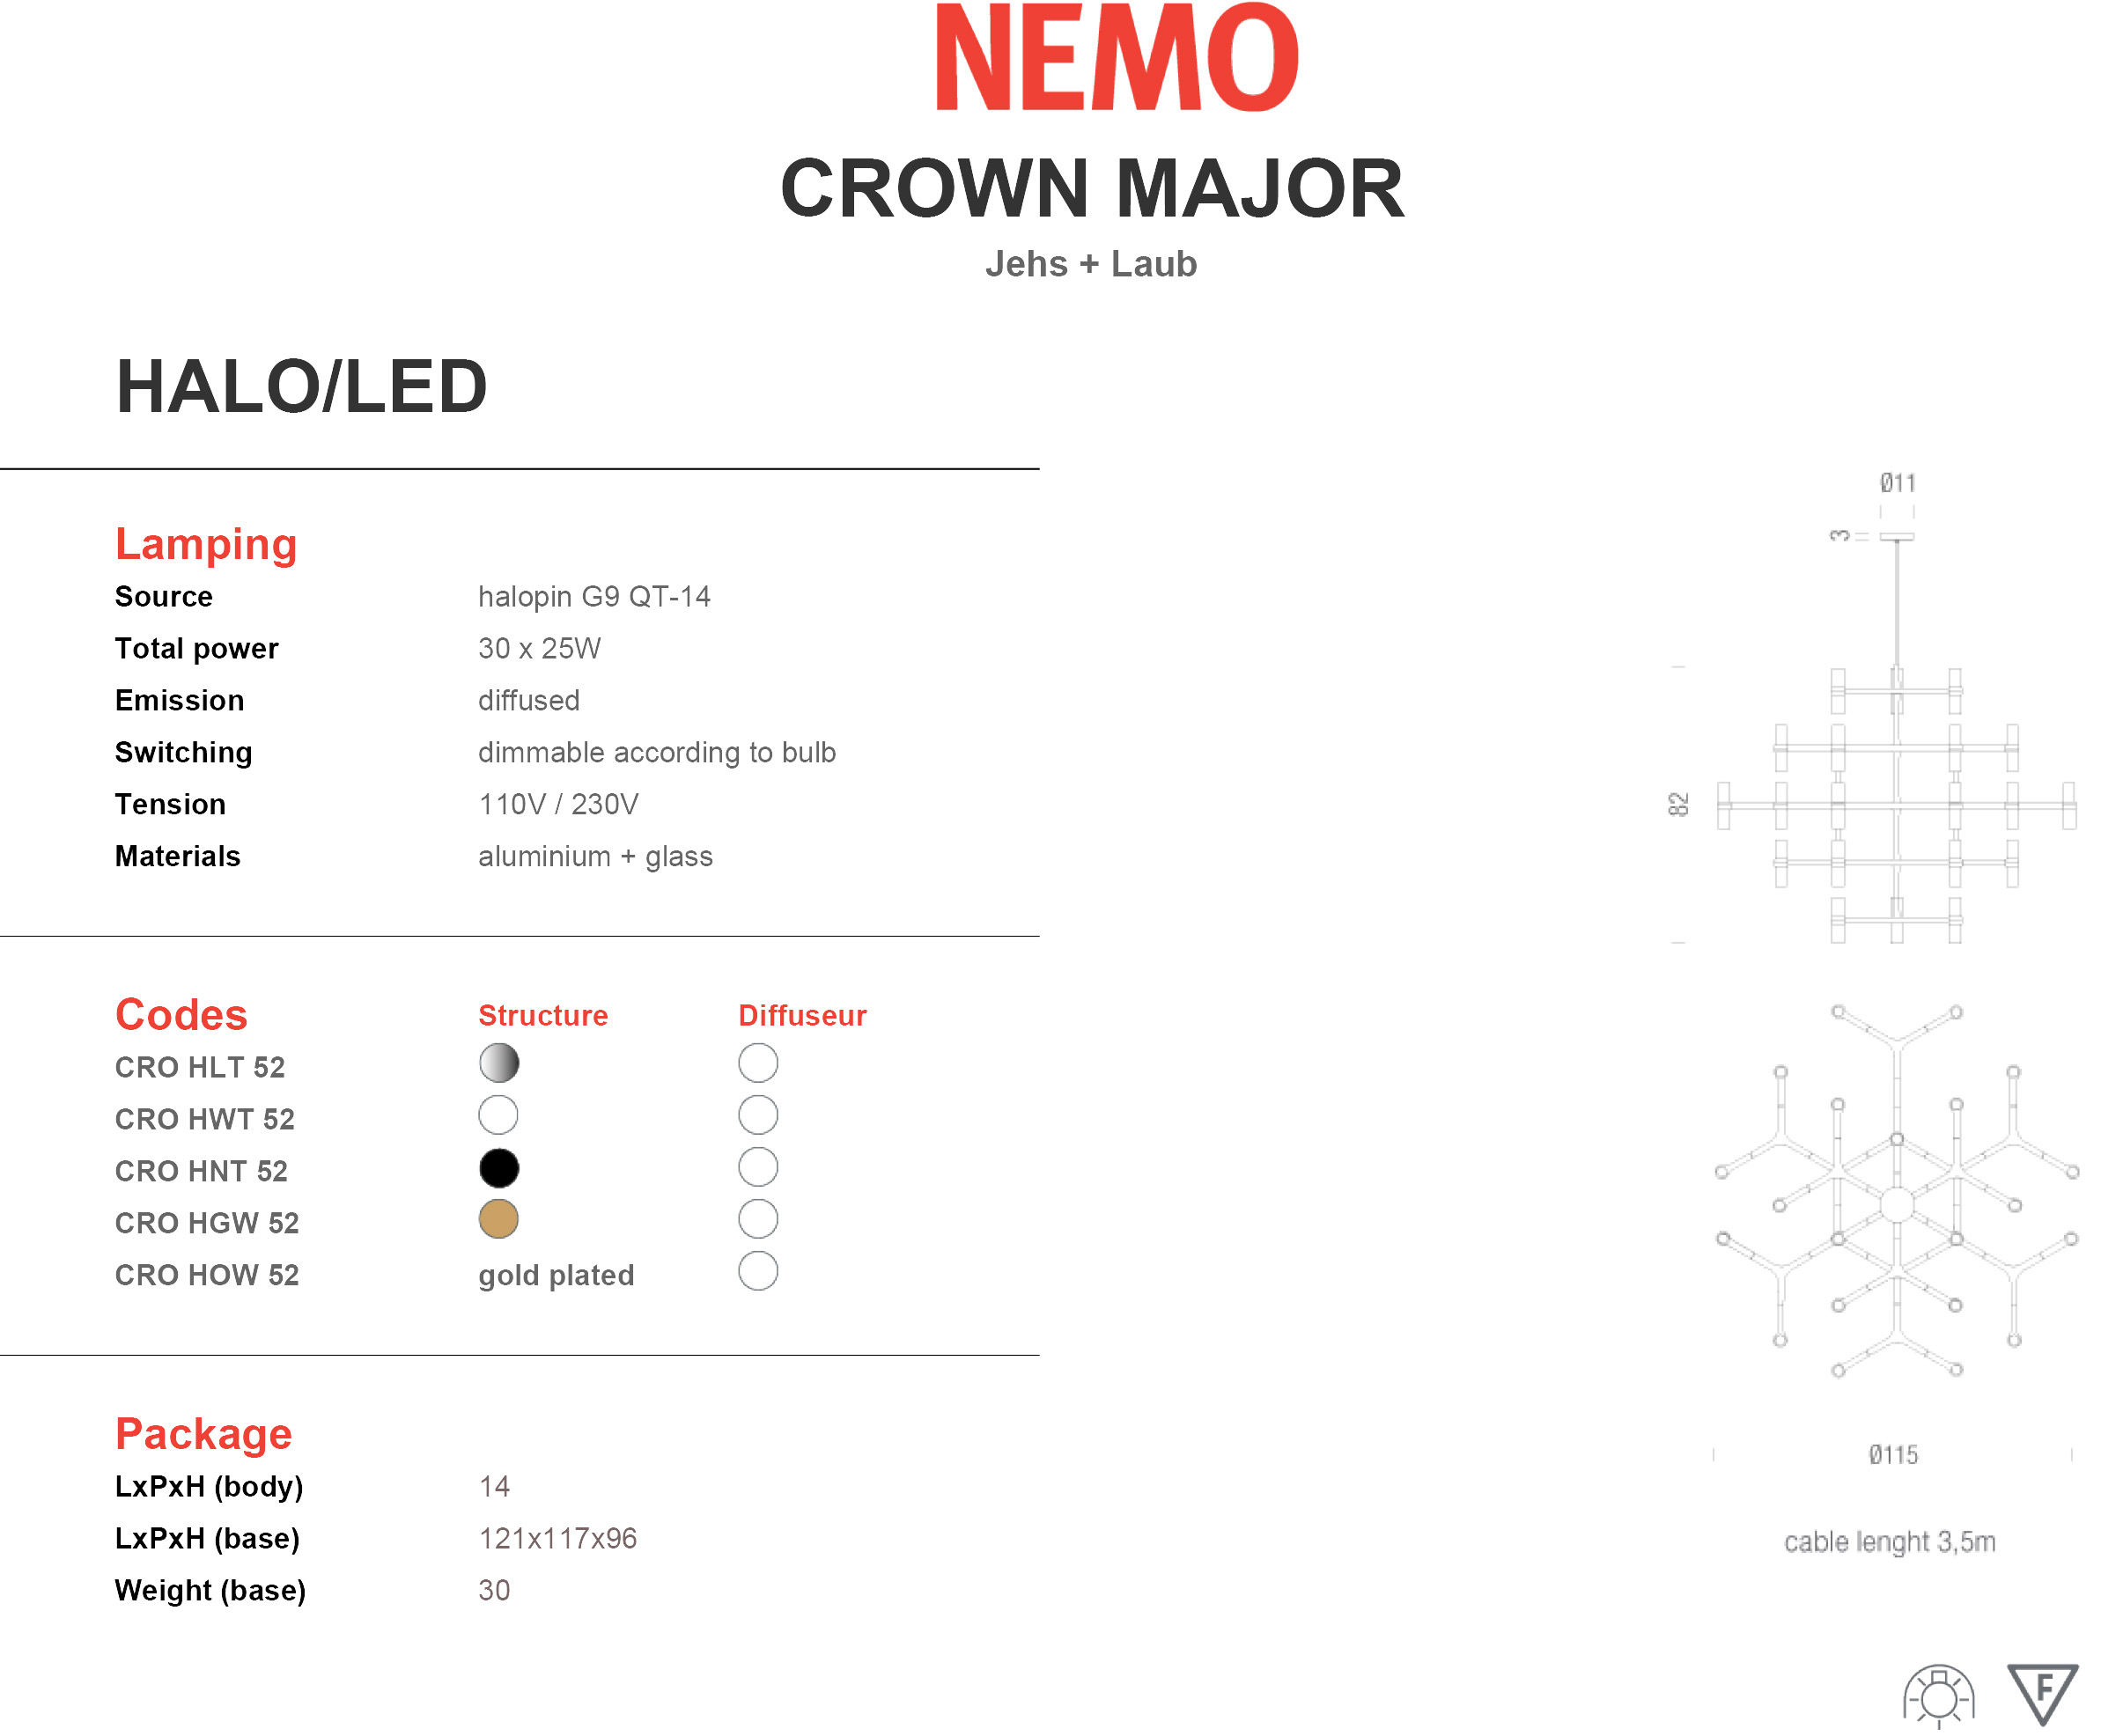 Nemo Crown Major Tech